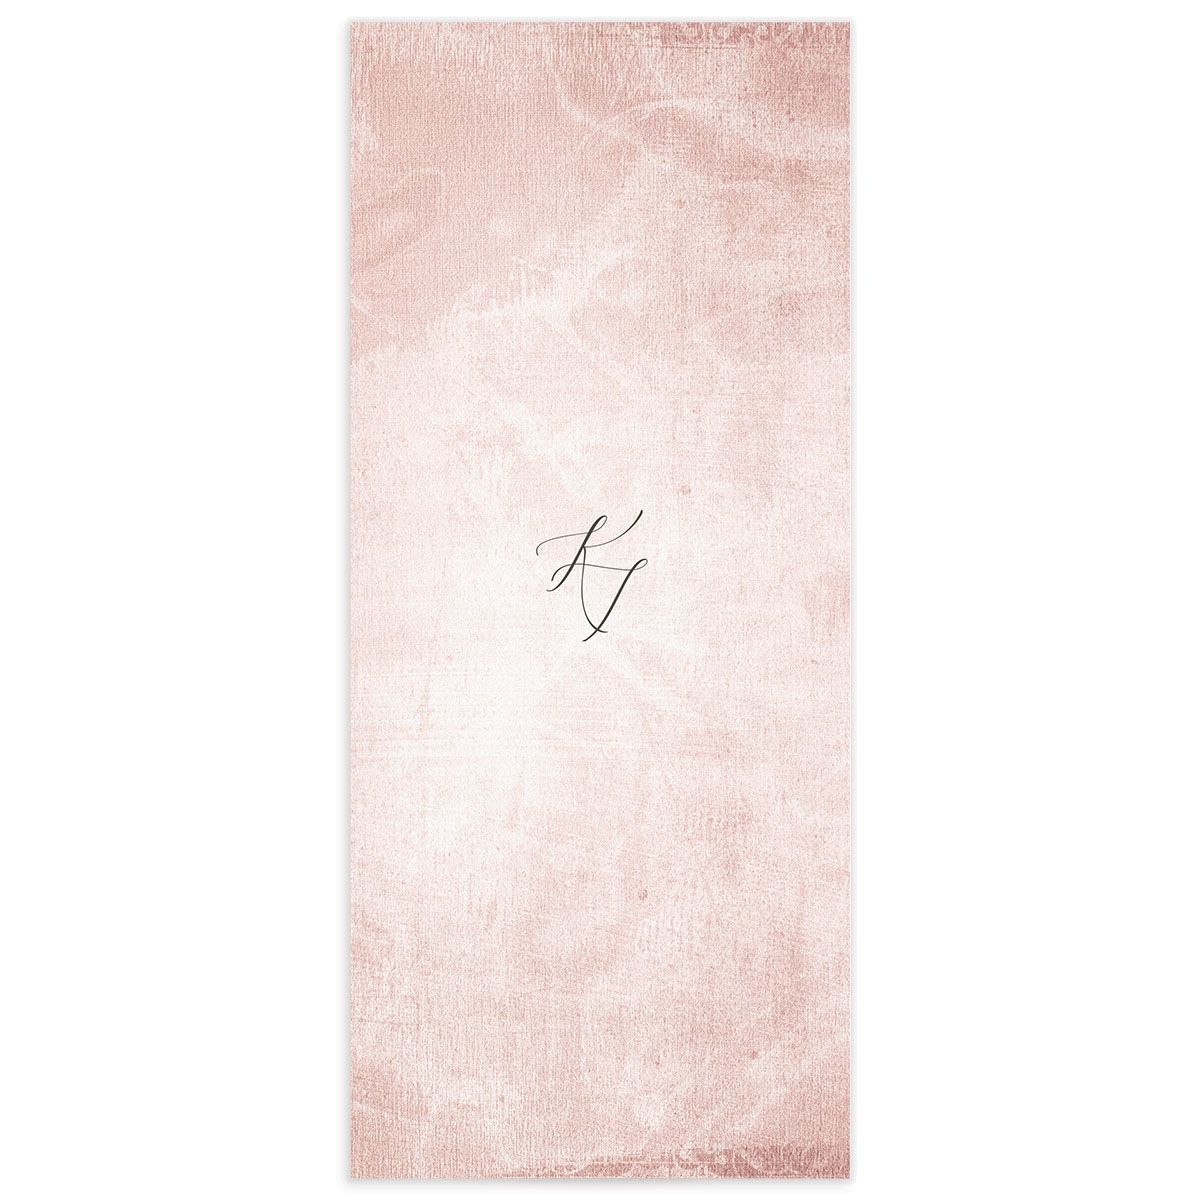 Muted Floral Wedding Menu Card back pink